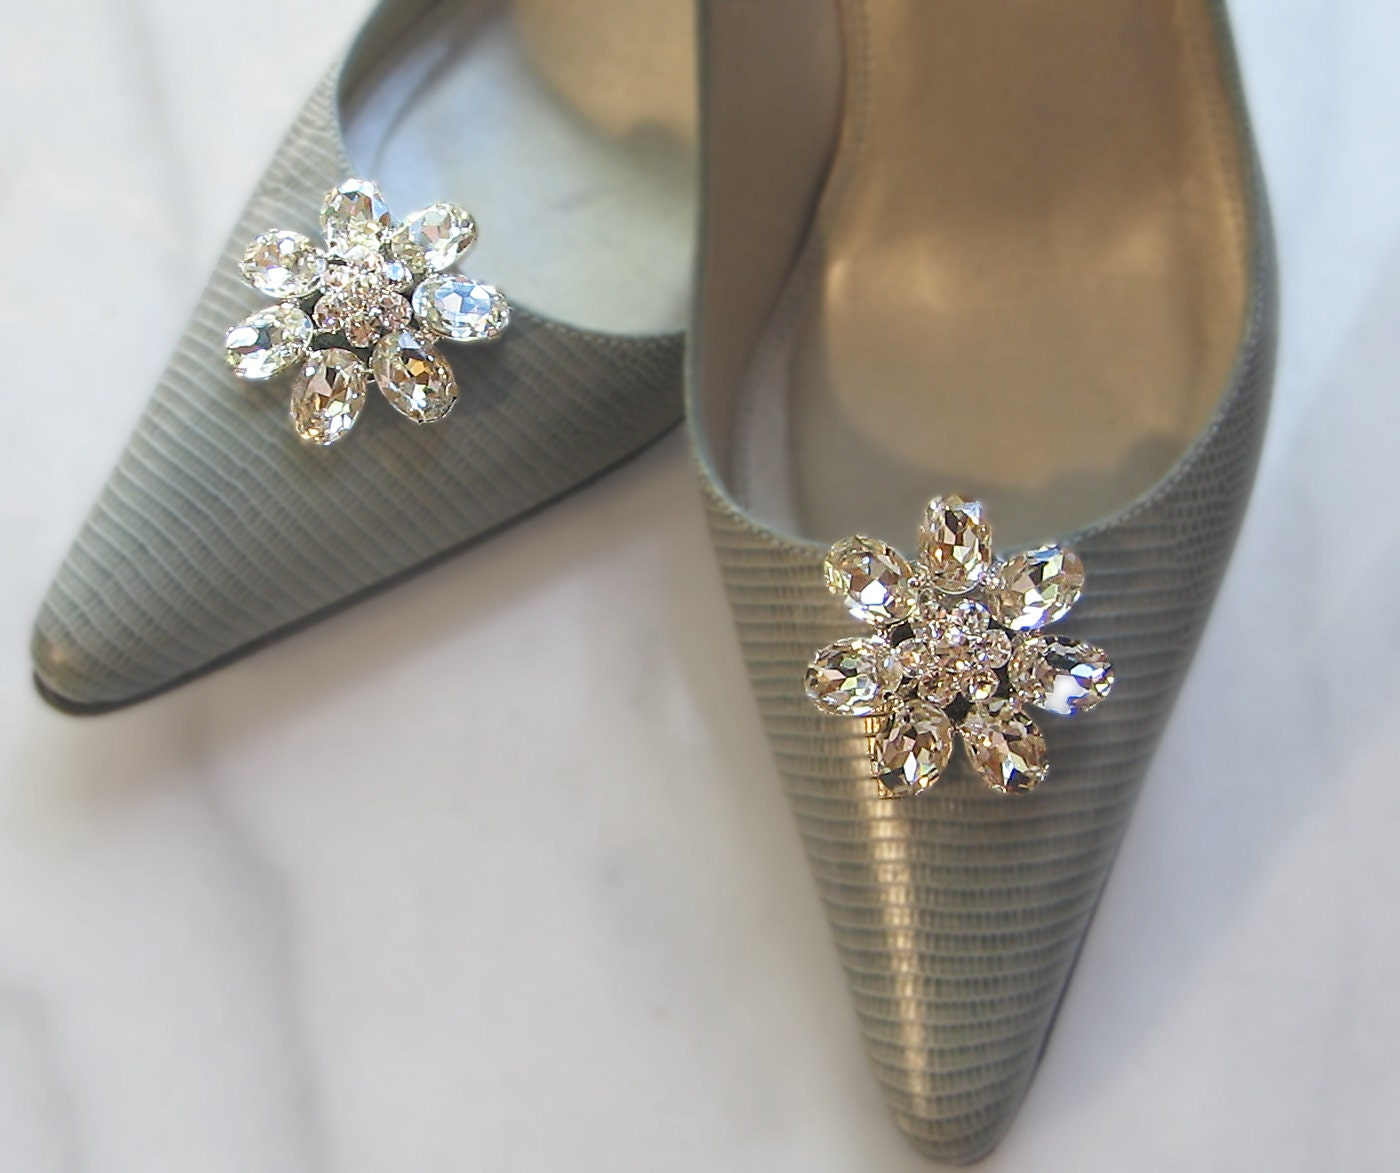 kilofly 2 Pairs Elegant Rhinestone Crystal Metal Shoe Clips Wedding Party Pack. by kilofly. £ Prime. Eligible for FREE UK Delivery. 5 out of 5 stars 3.